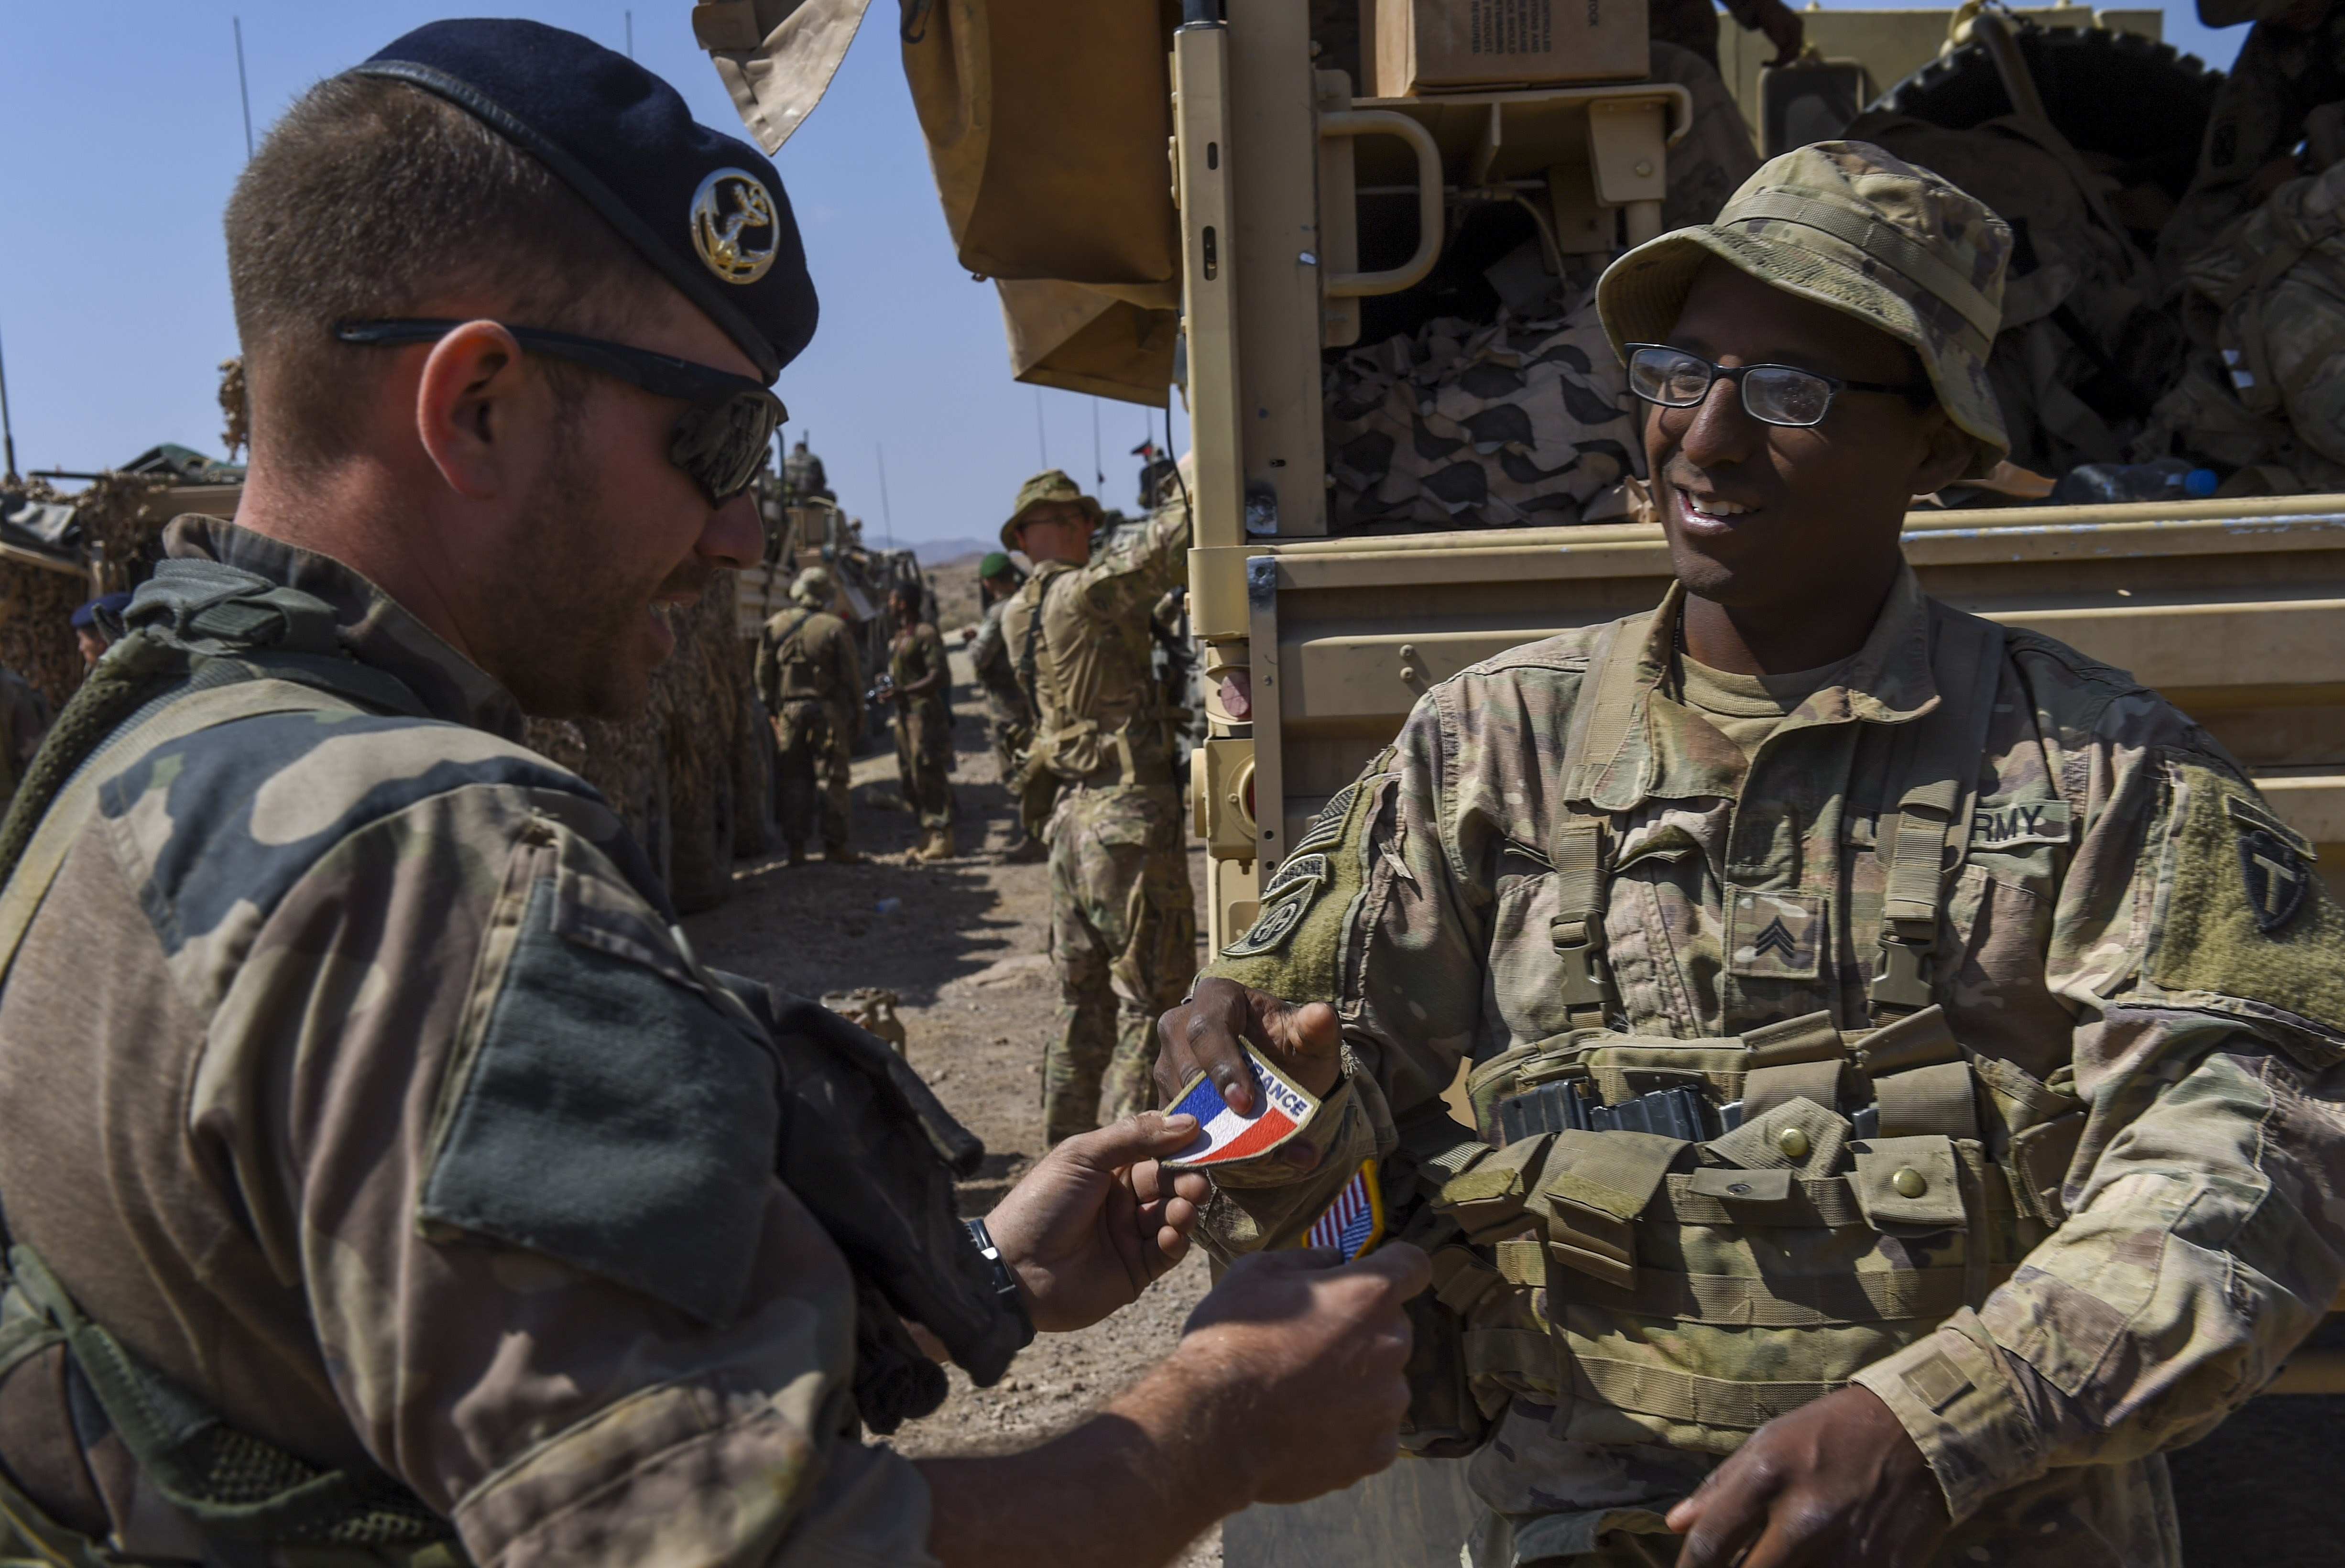 U.S. Army Sgt. Able Ballejo (right), assigned to 3rd Battalion, 144th Infantry Regiment, Task Force Bayonet, attached to Combined Joint Task Force - Horn of Africa (CJTF-HOA), trades patches with a French marine after the graduation ceremony of a French Desert Commando Course near Ali Sabieh, Djibouti, Dec. 7, 2017. U.S. service members assigned to CJTF-HOA participated in the 12-day course, in which they learned the fundamentals of desert combat, survival, and troop movements while also bridging language and cultural barriers between French and American troops. (U.S. Air Force photo by Staff Sgt. Timothy Moore)